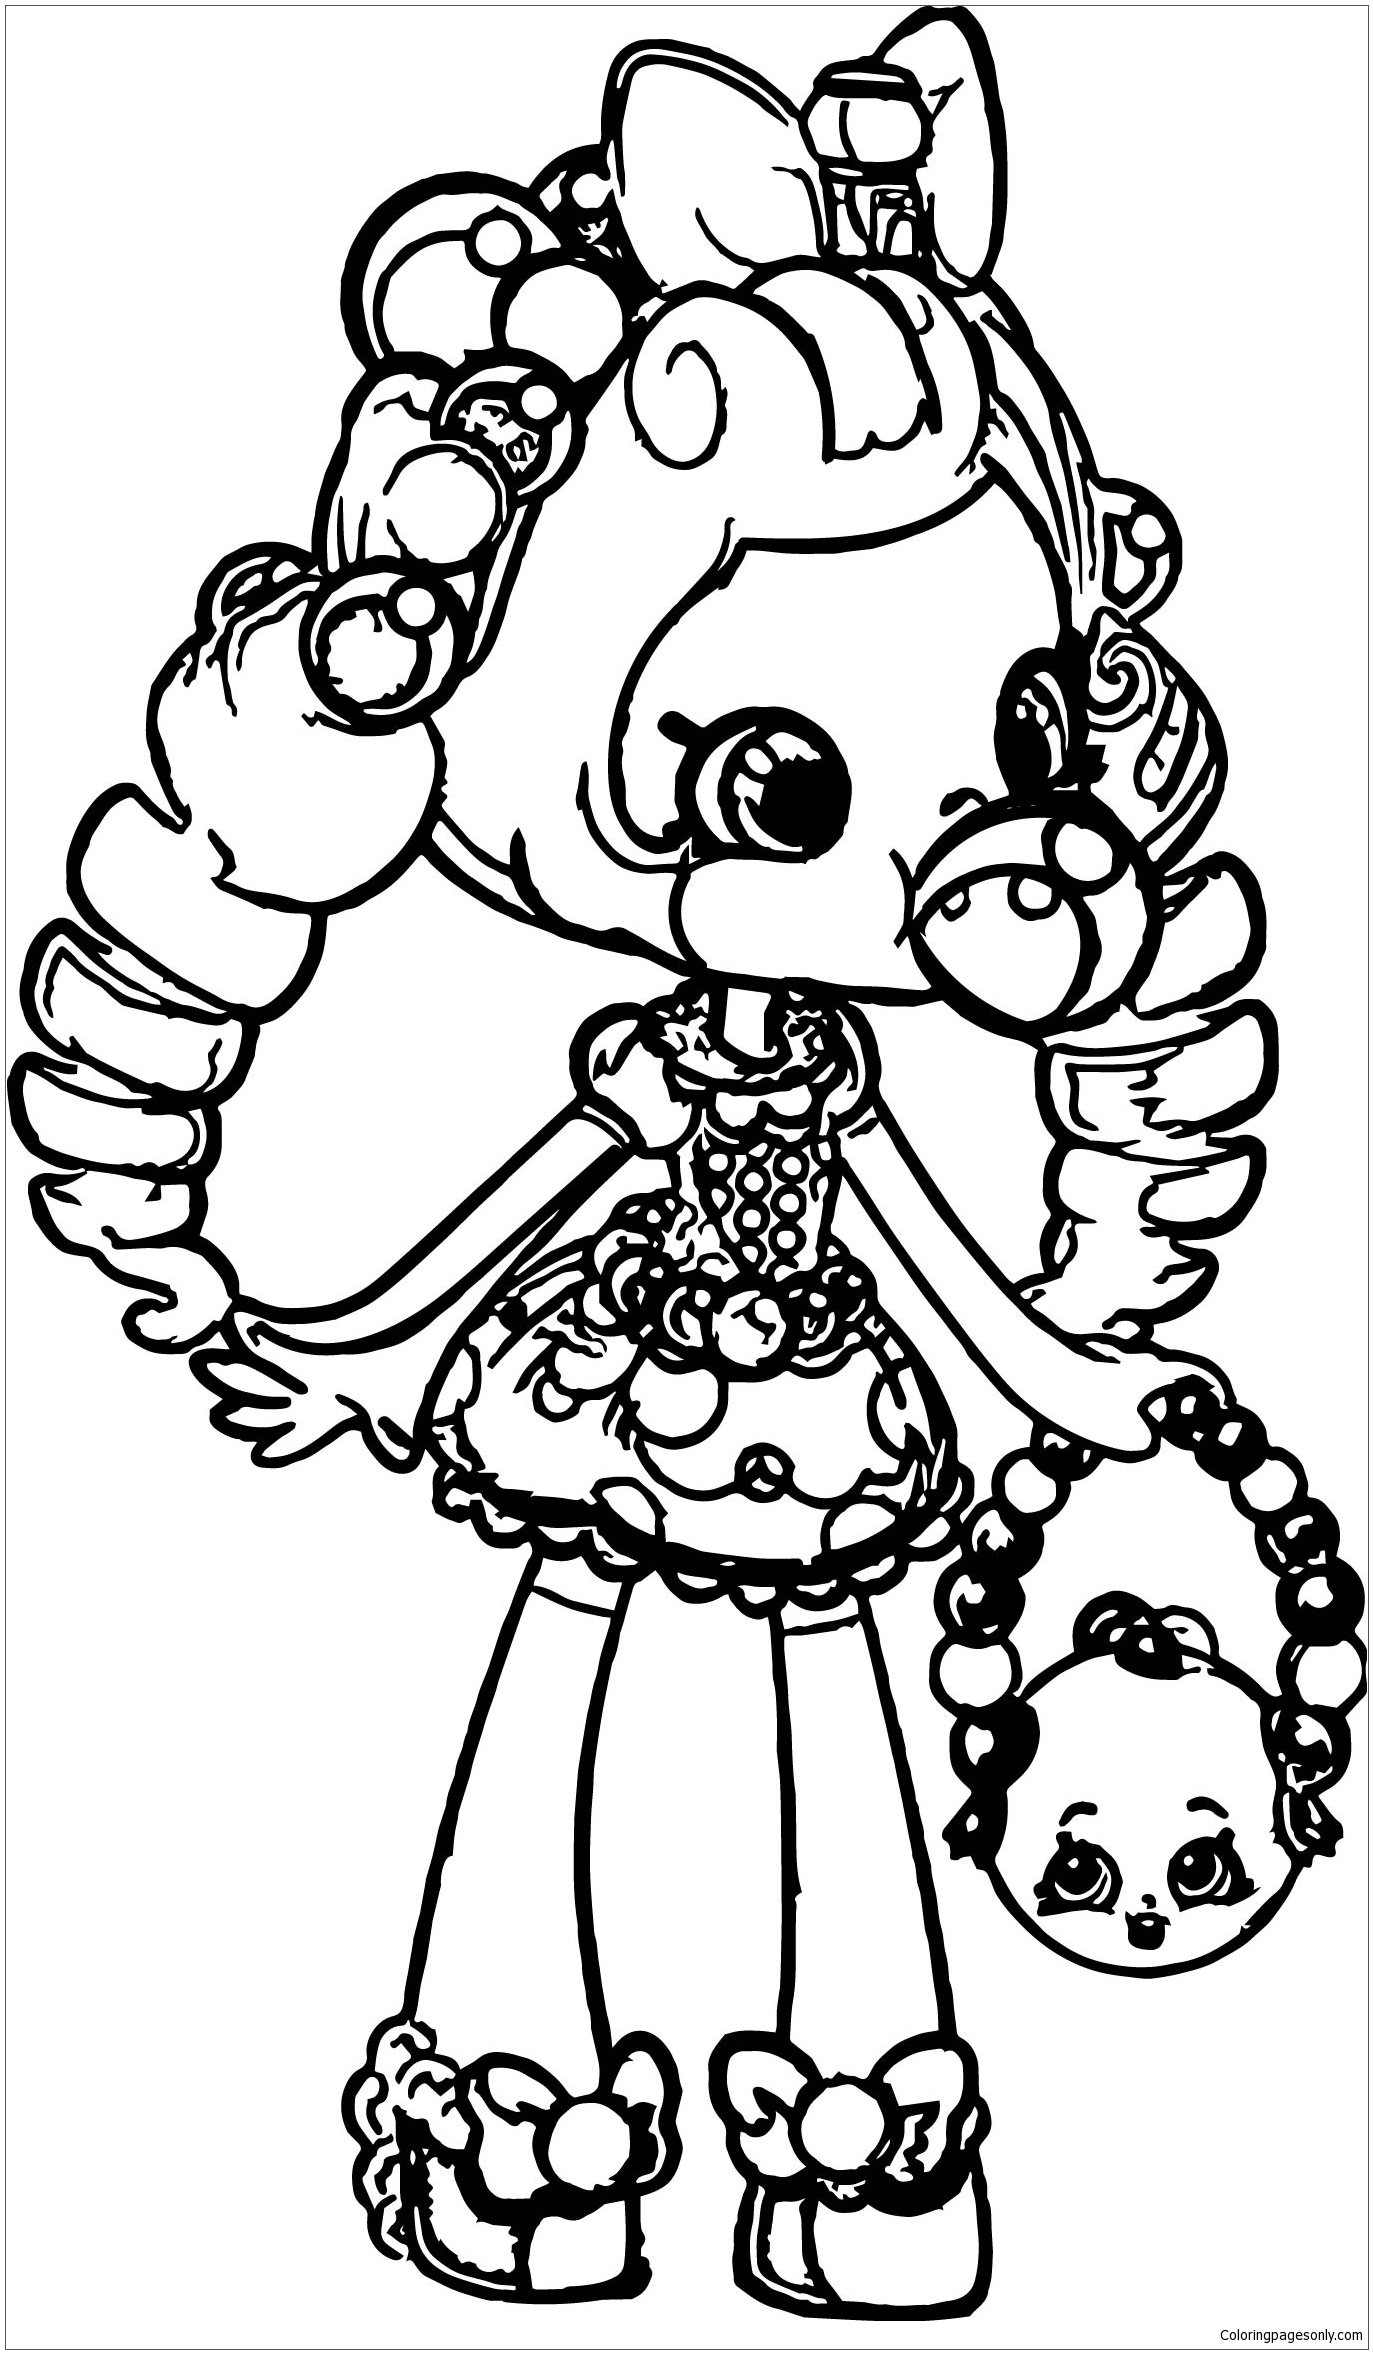 picture of a girl to color shopkins girl coloring page free coloring pages online to of girl picture a color